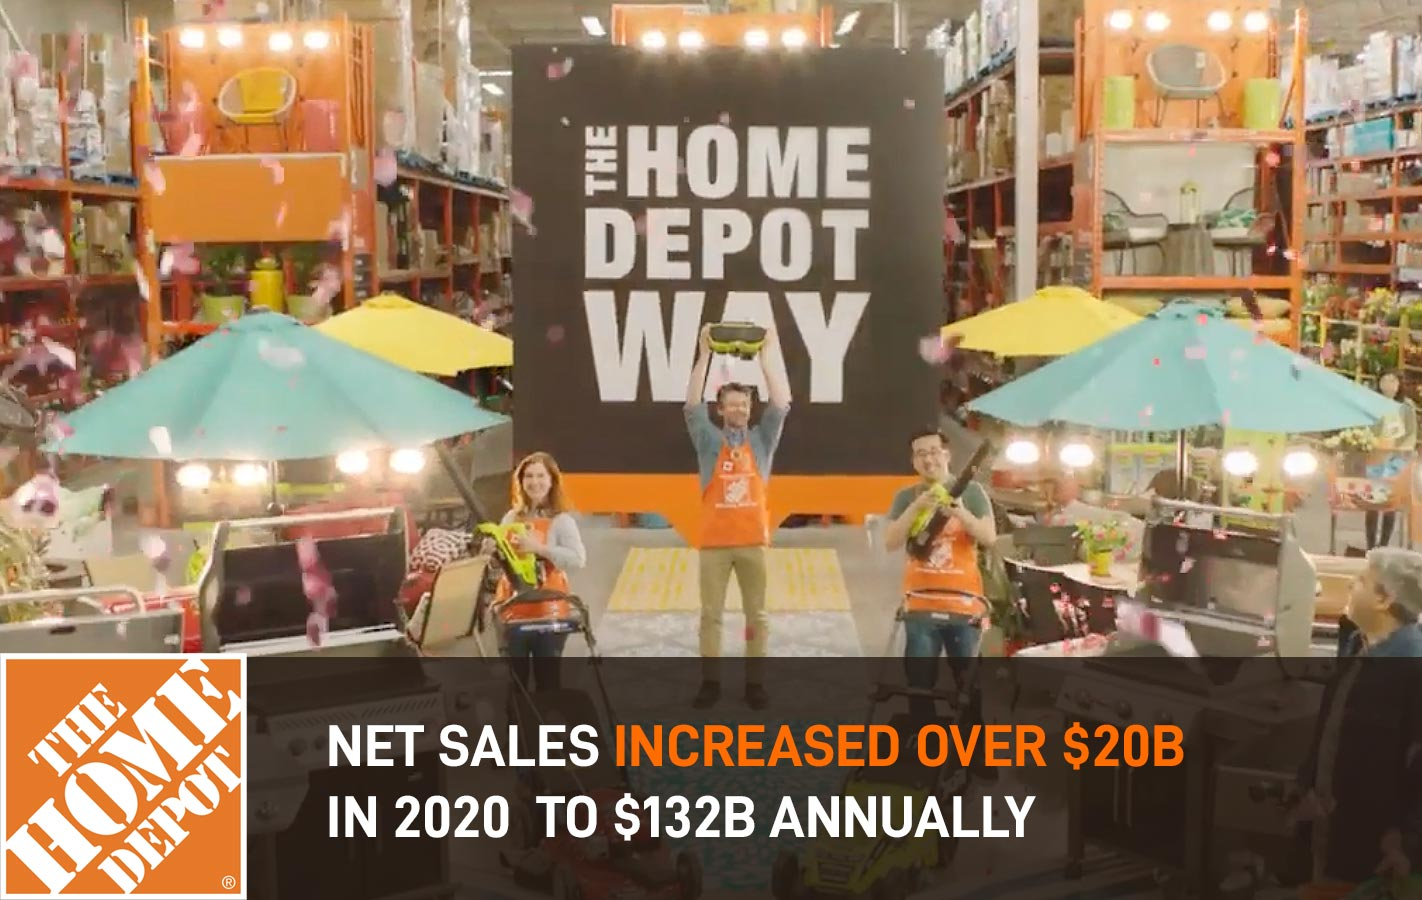 HomeDepot Net sales increased over $20B in 2020 to $132B Annually